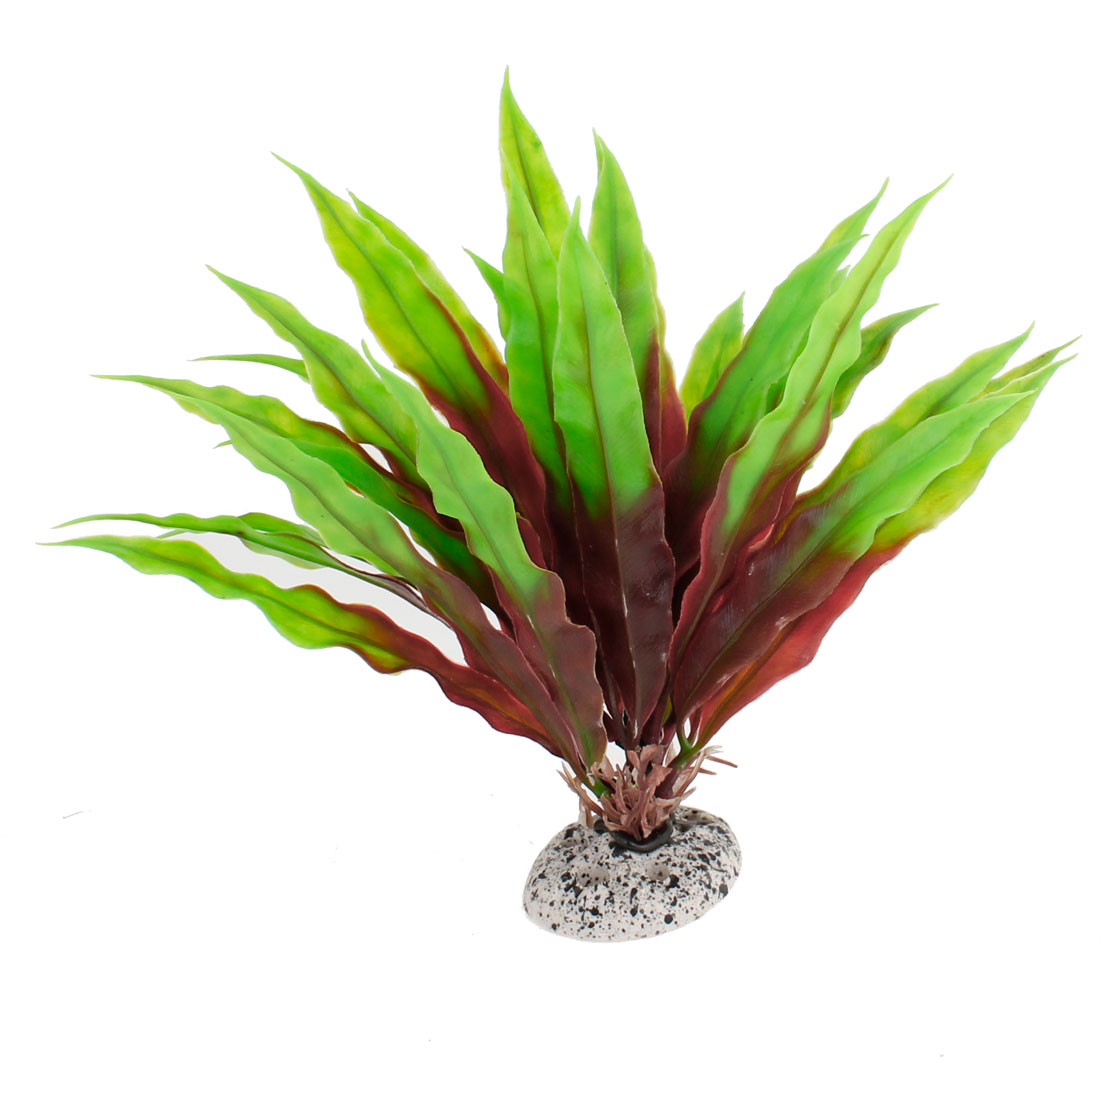 Plastic Red Green Simulation Aquatic Plant Decor for Aquarium Fish Tank